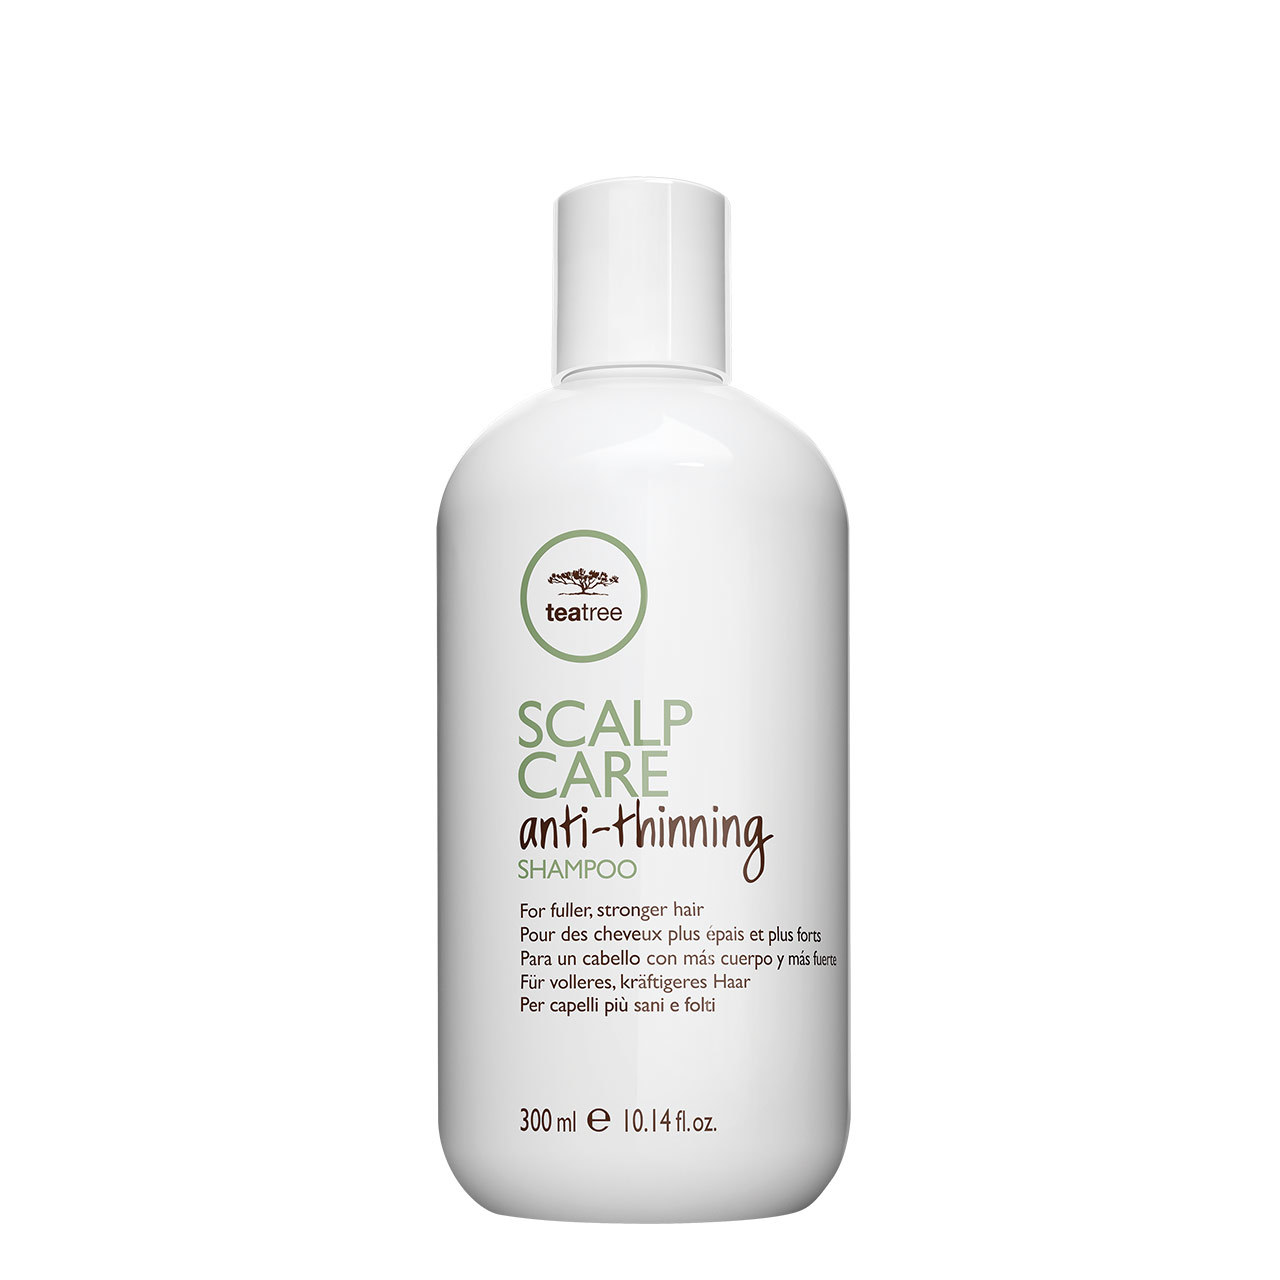 Scalp Care Anti-thinning Shampoo obsah (ml): 300ml